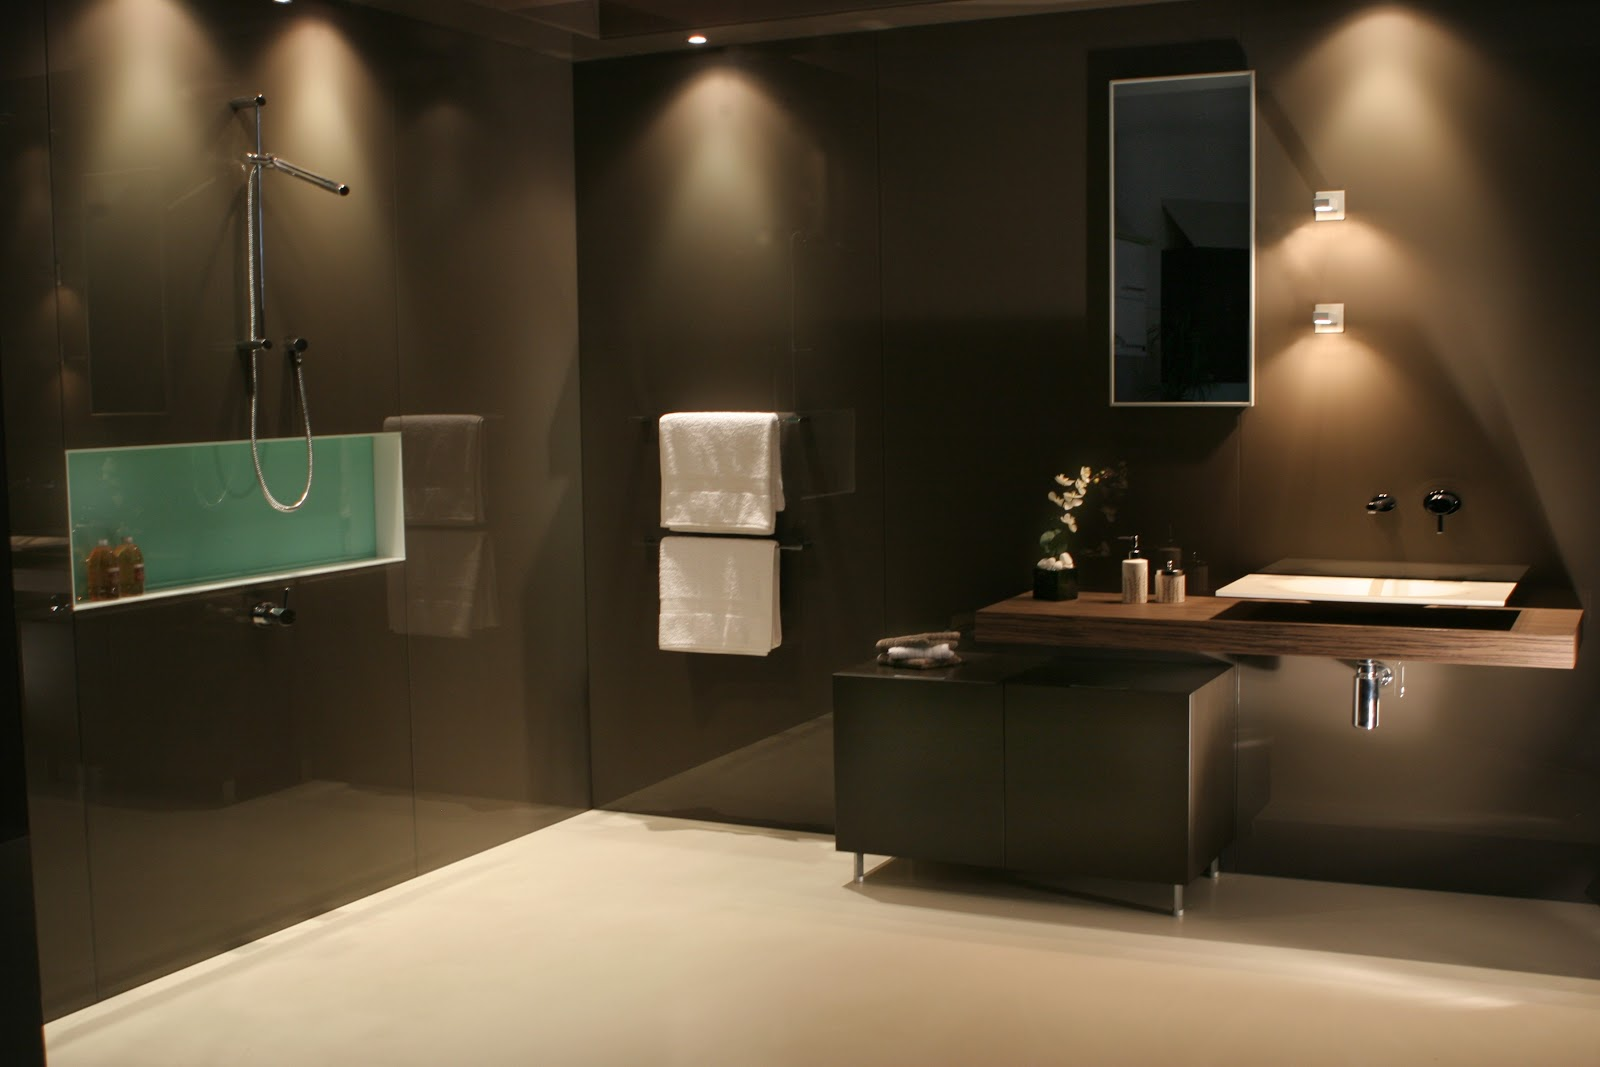 Minosa Minosa Collaborates With Deco Glaze To Complete This Stunning Showroom